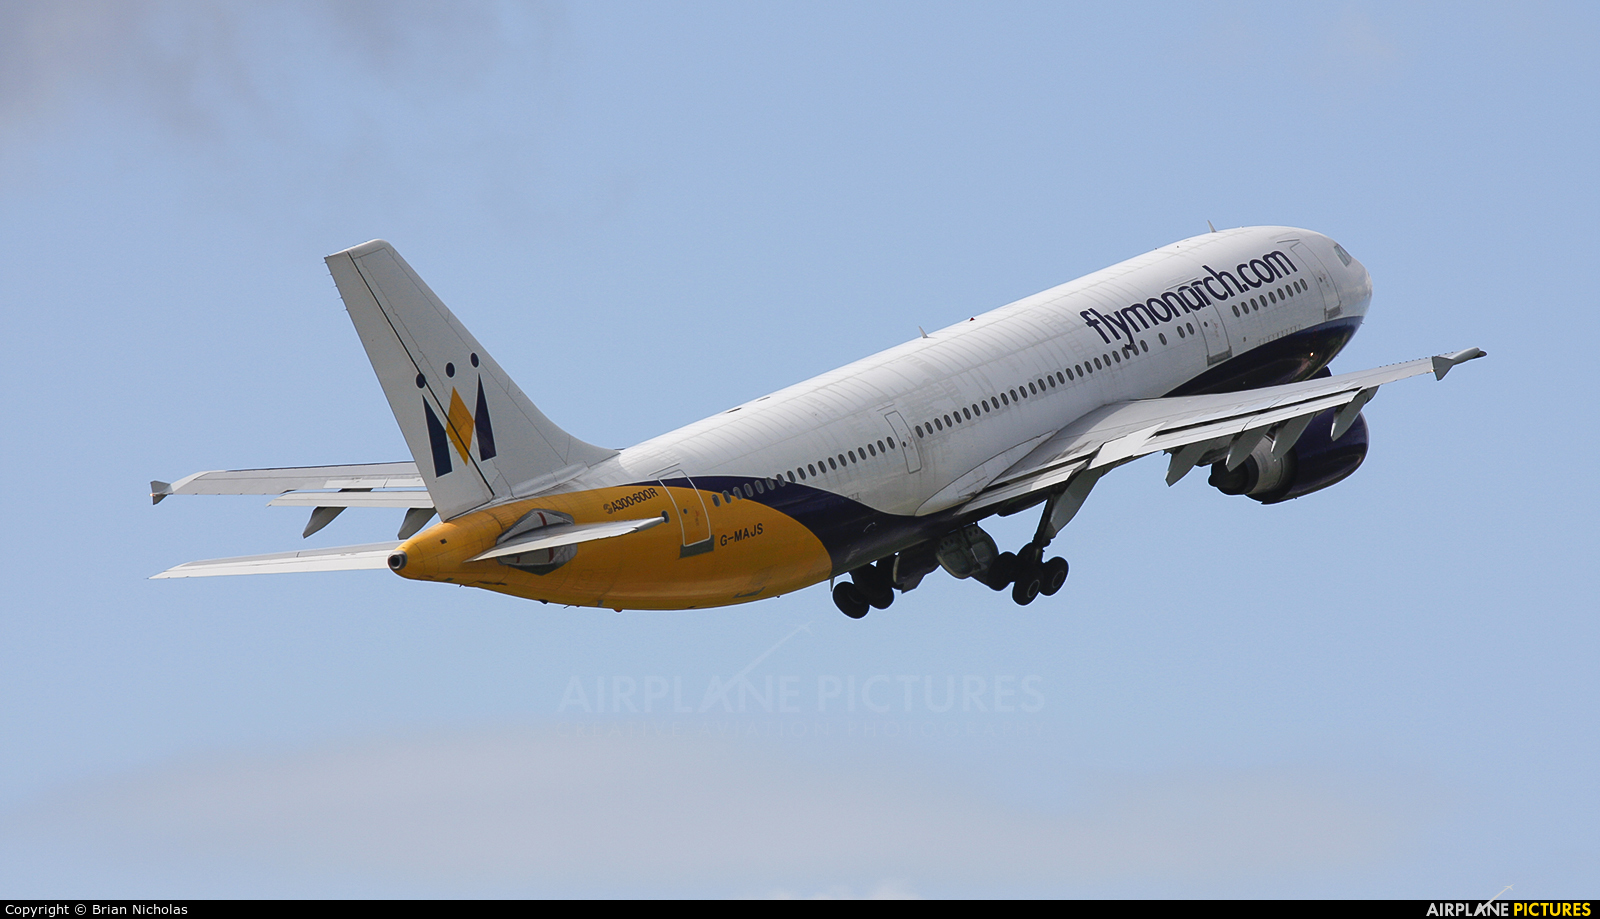 Monarch Airlines G-MAJS aircraft at Manchester